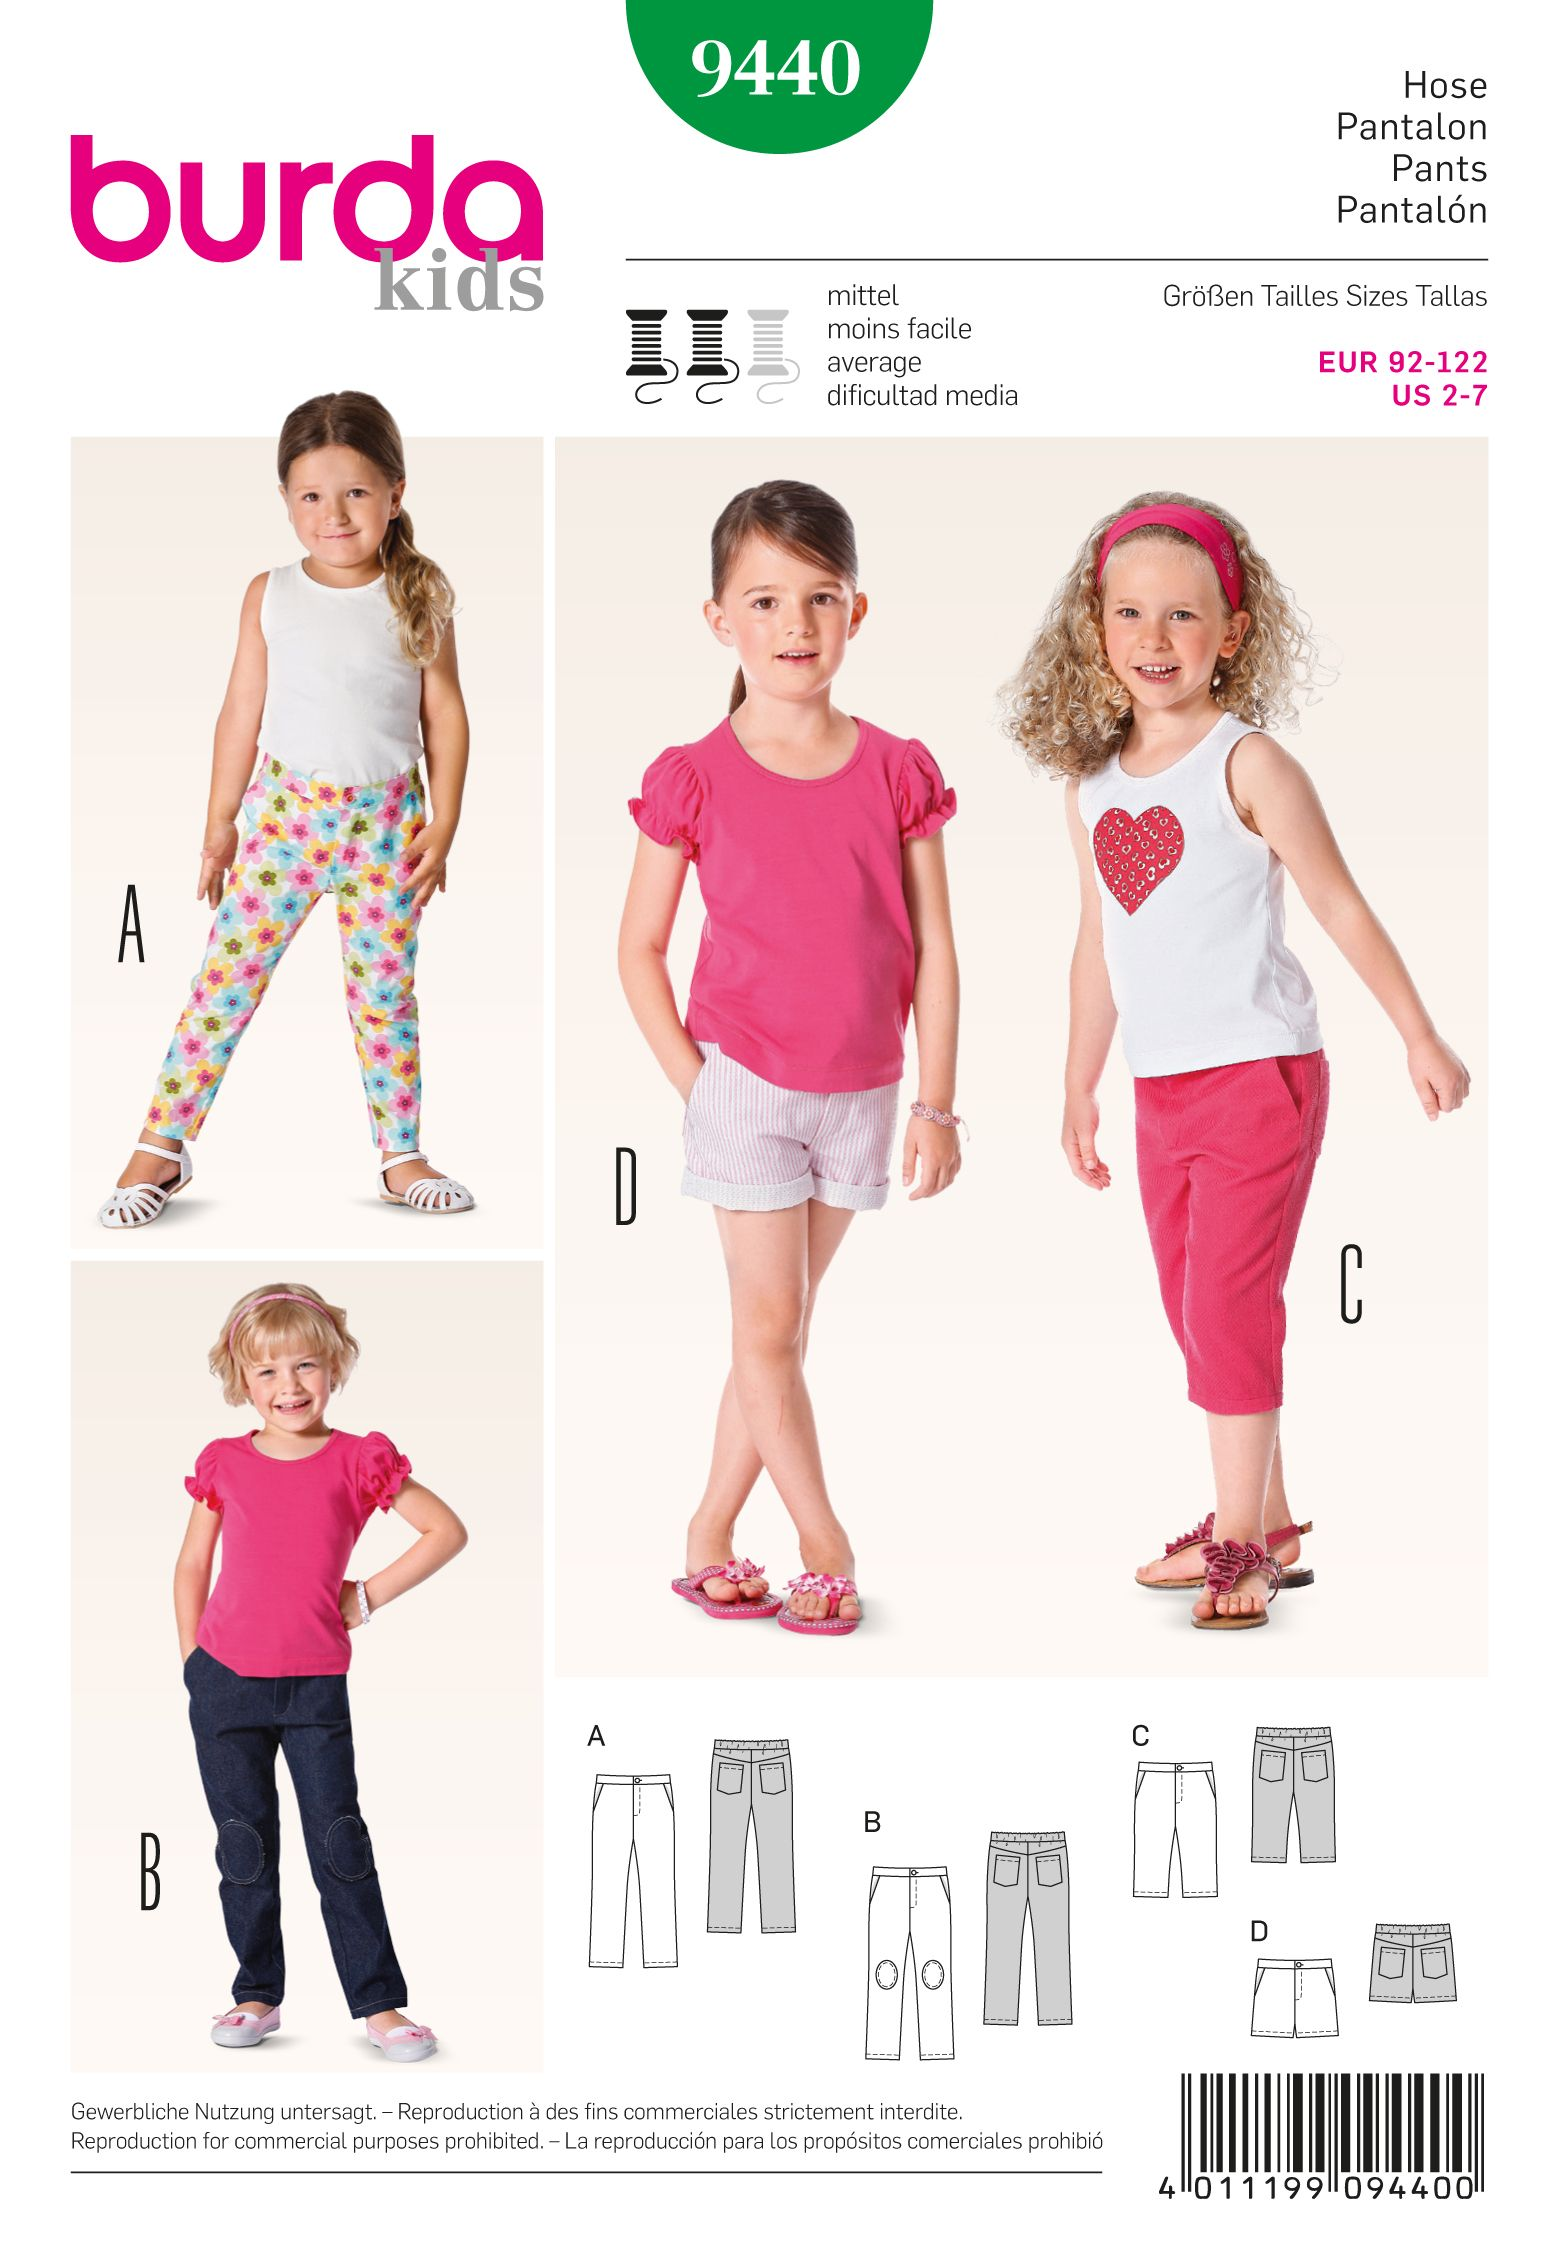 Burda 9440 toddlers toddler sewing patterns sew pattern and burda 9440 toddlers toddler sewing patternssew jeuxipadfo Choice Image